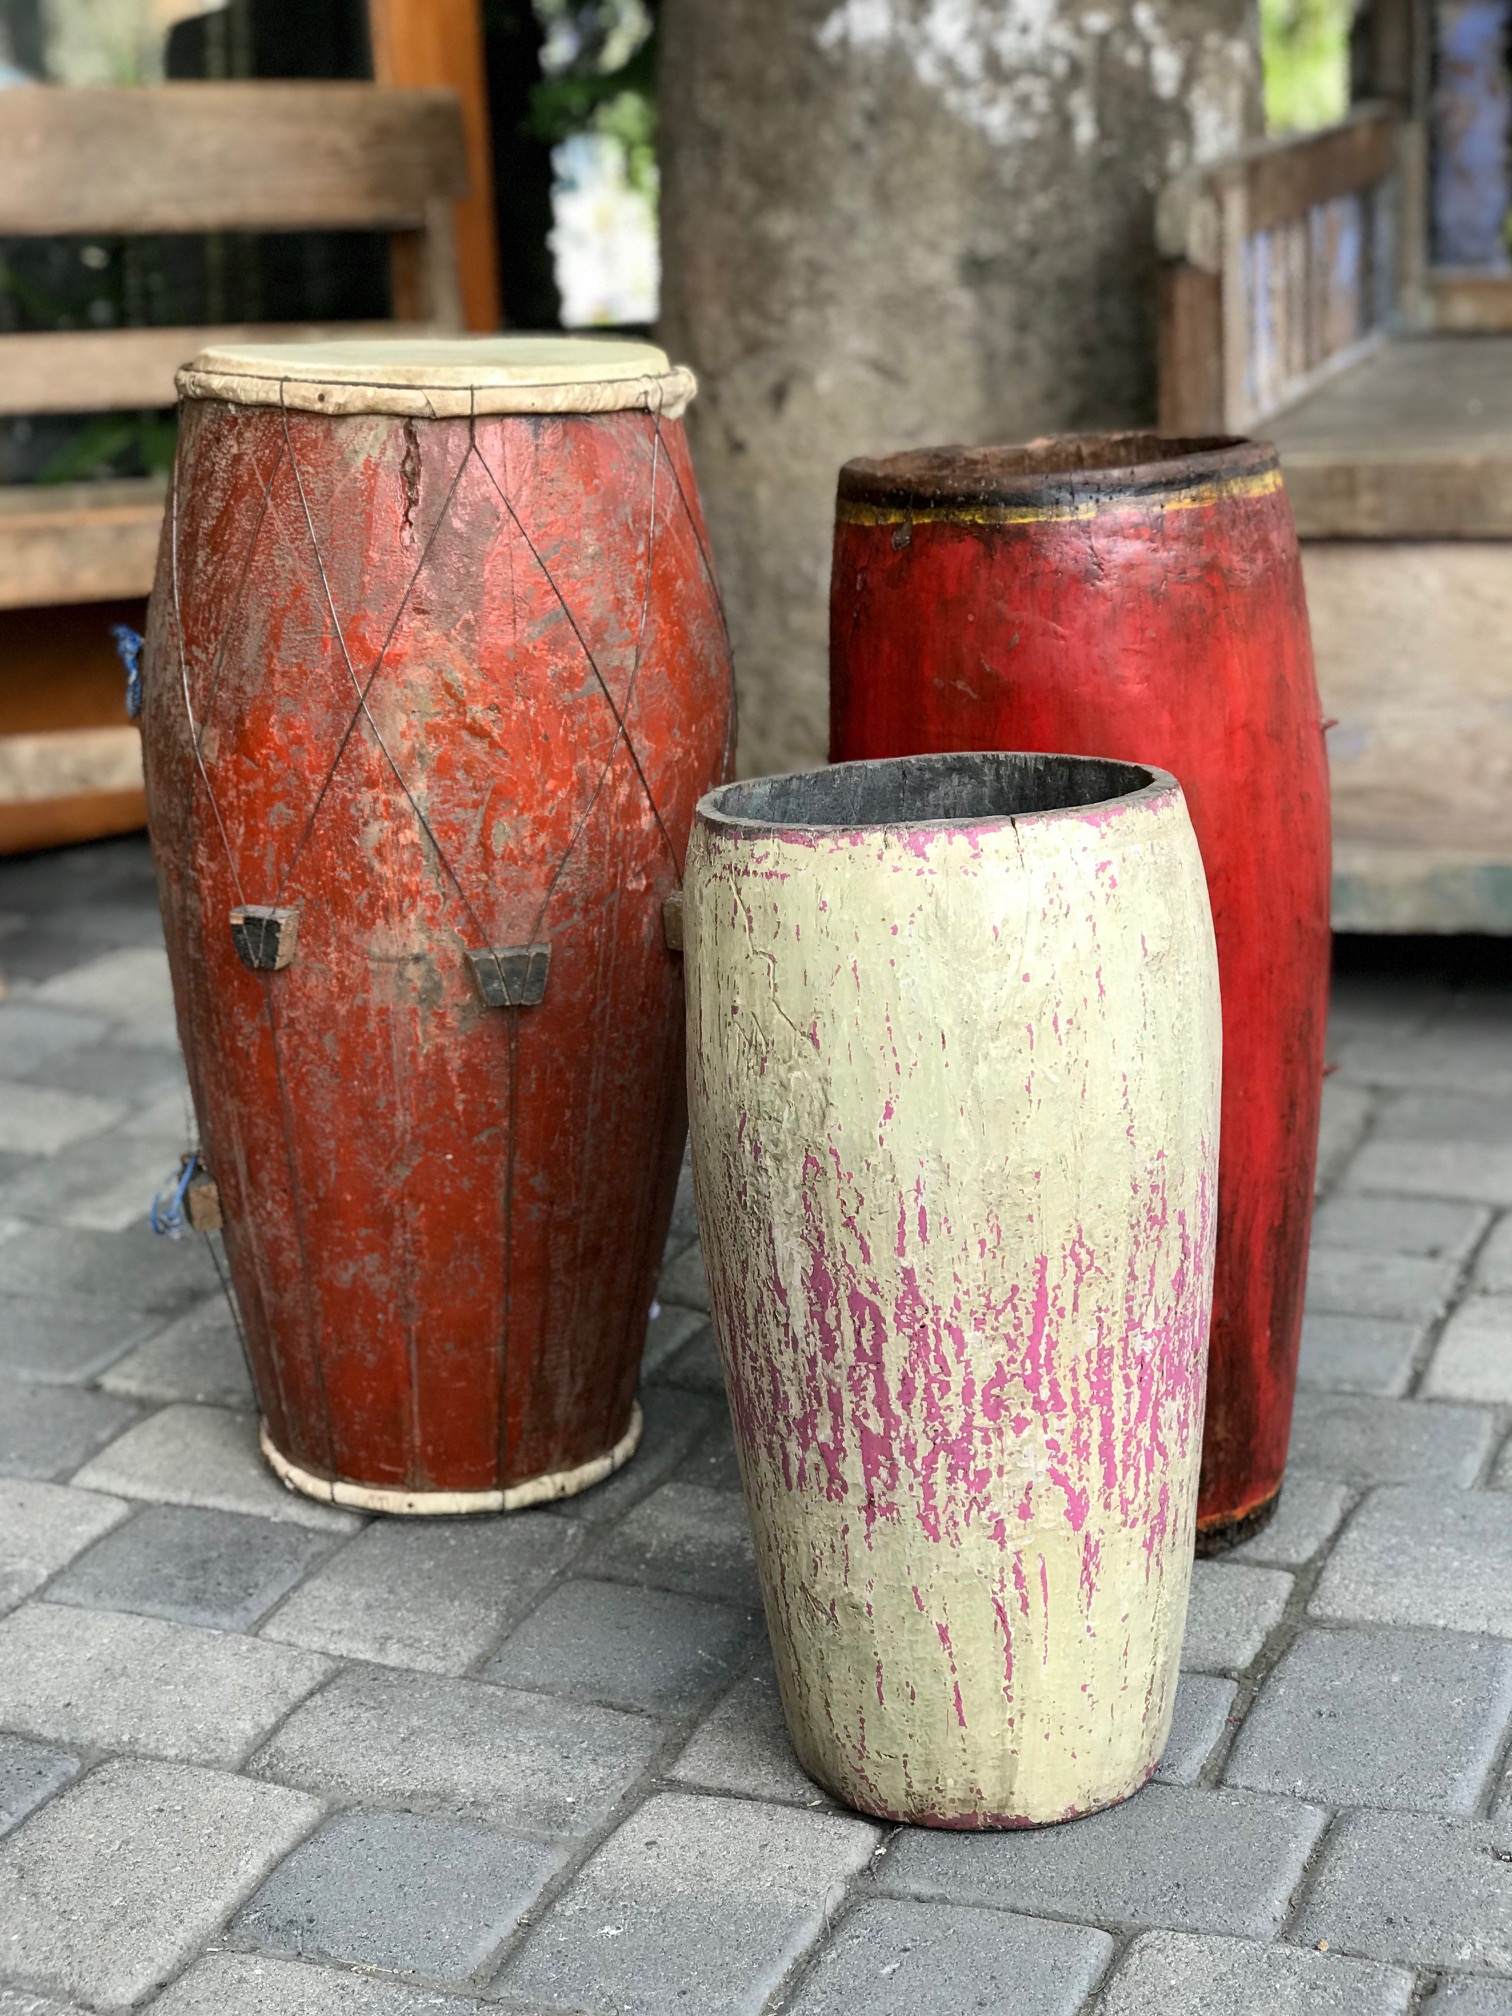 """Description Musical Instuments, Drums, wood, paint, hide skin, Indonesia, left to right - 27 1/2"""" x 16"""" $295.; white/front- 20 1/2"""" x 12"""", $225.; 25 1/2"""" x 13"""", $280., thedavidalancollection.com , solana beach, ca"""